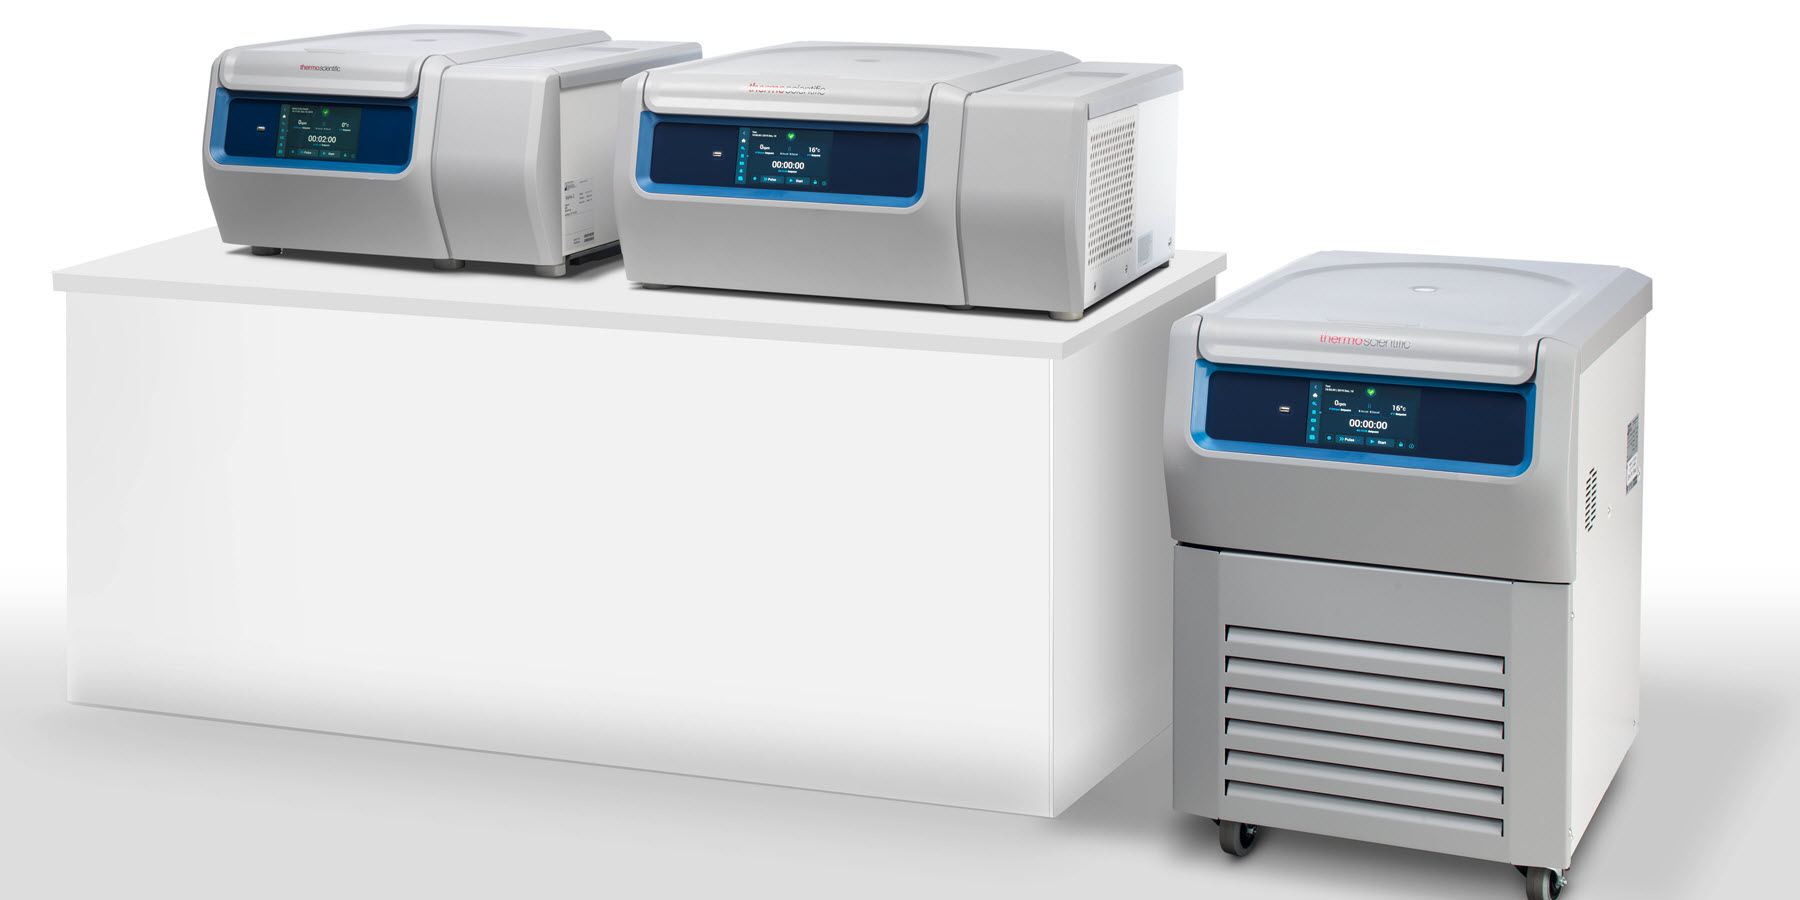 New Centrifuges Deliver Optimal Sample Safety, Functionality, and Ergonomics